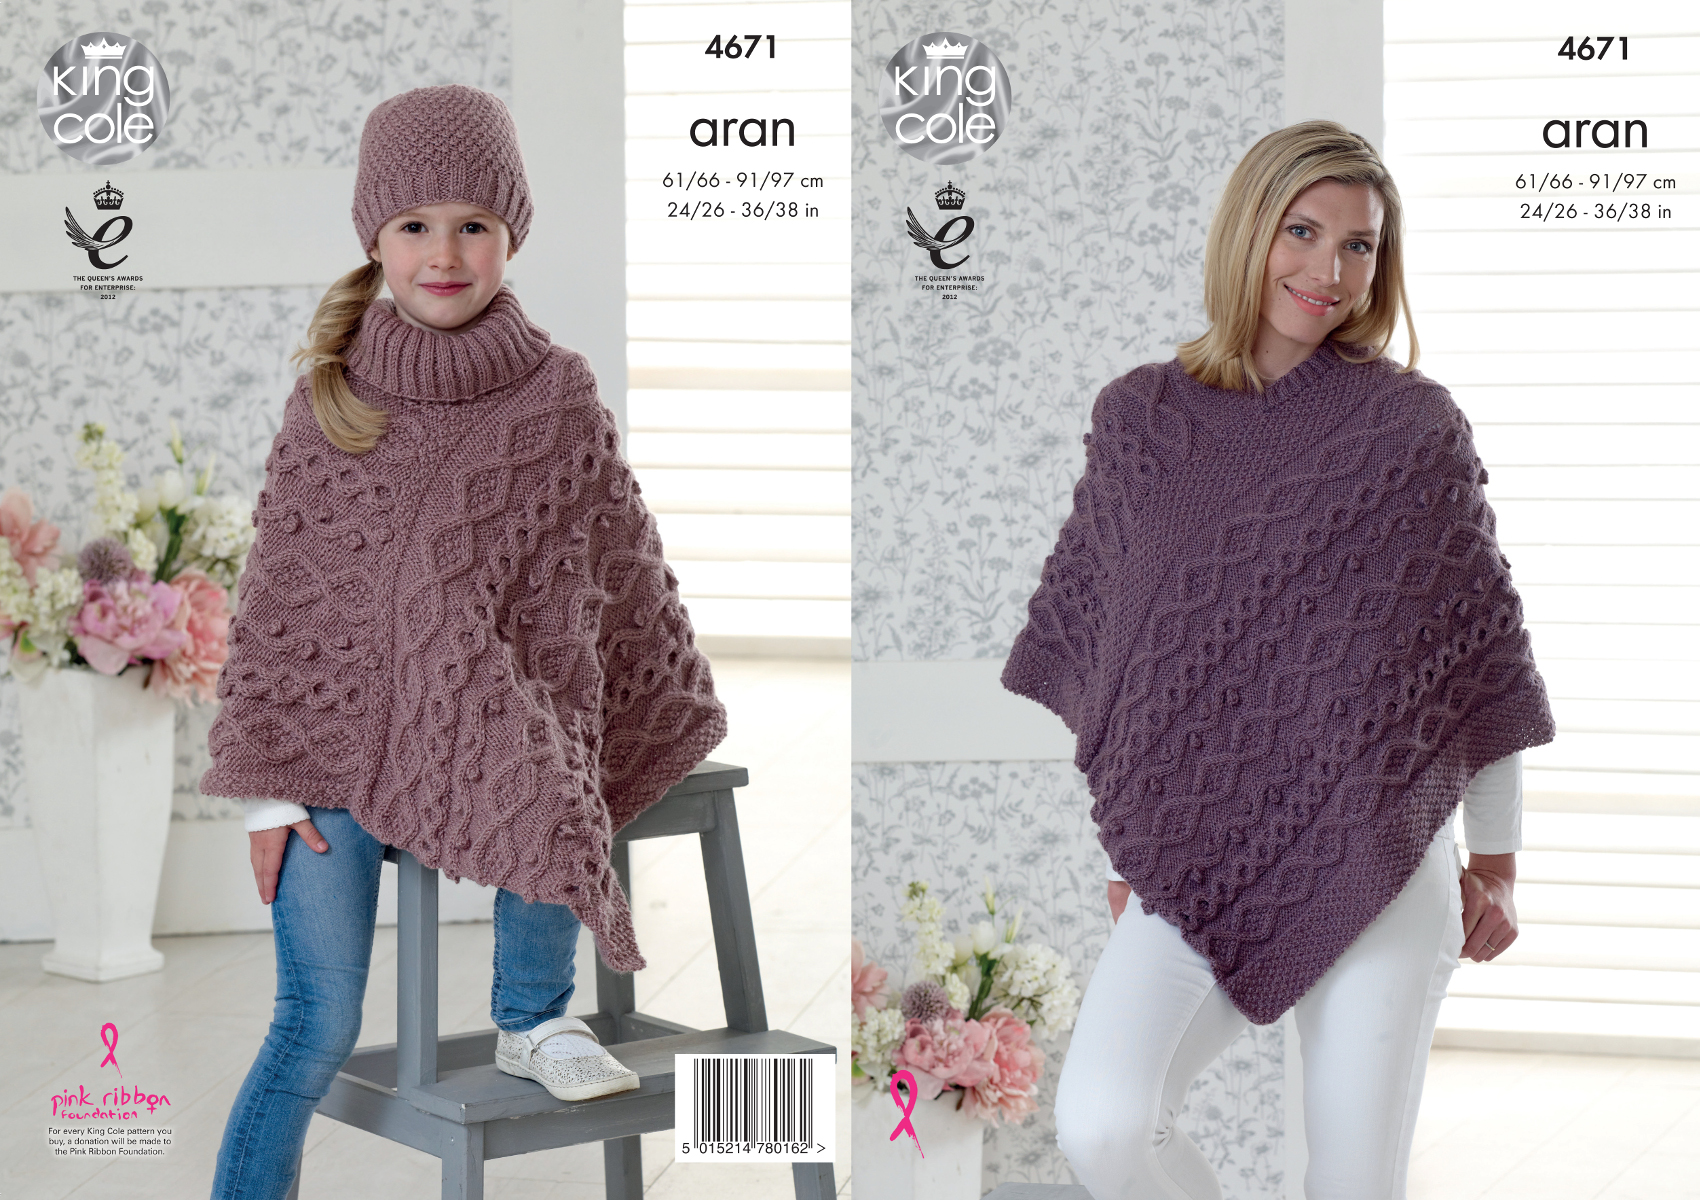 King Cole Ladies Girls Aran Knitting Pattern V Or Polo Neck Poncho